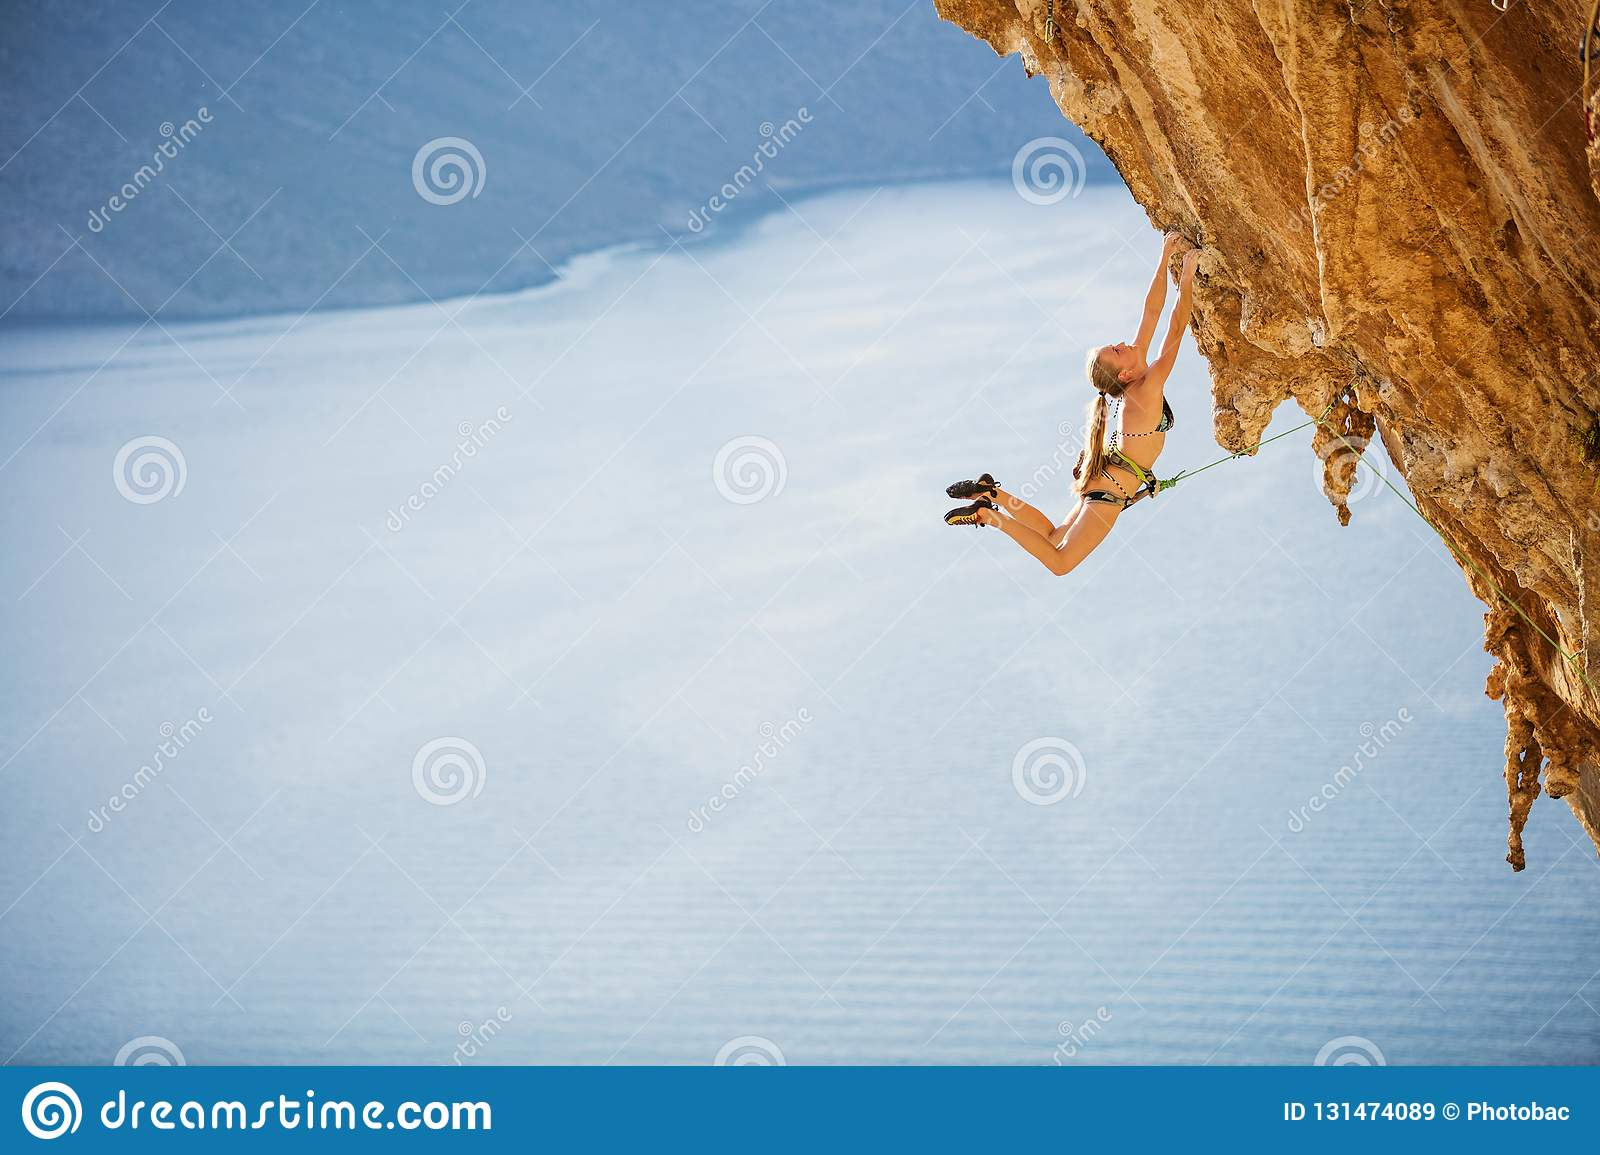 Female rock climber jumping on handholds on challenging route on cliff